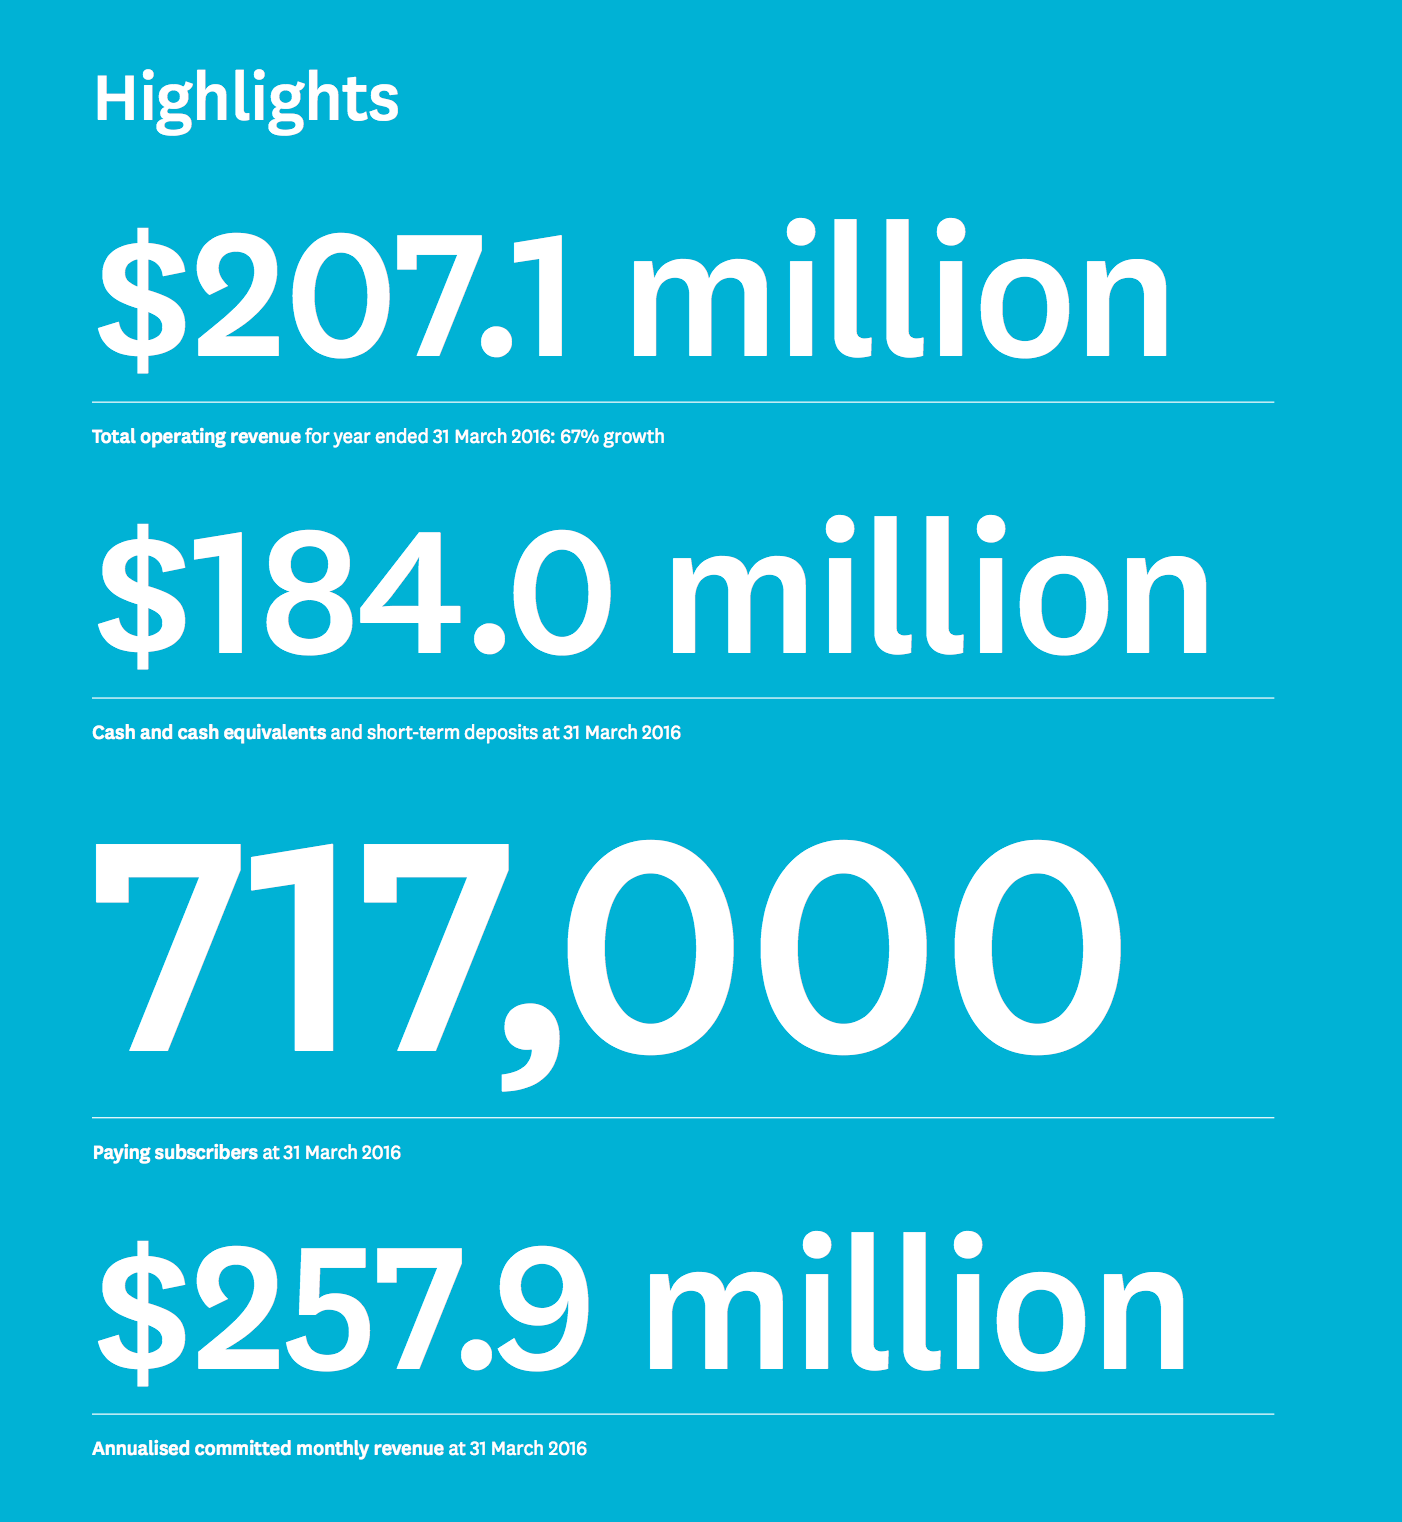 Highlights from Xero's 2016 Annual Report